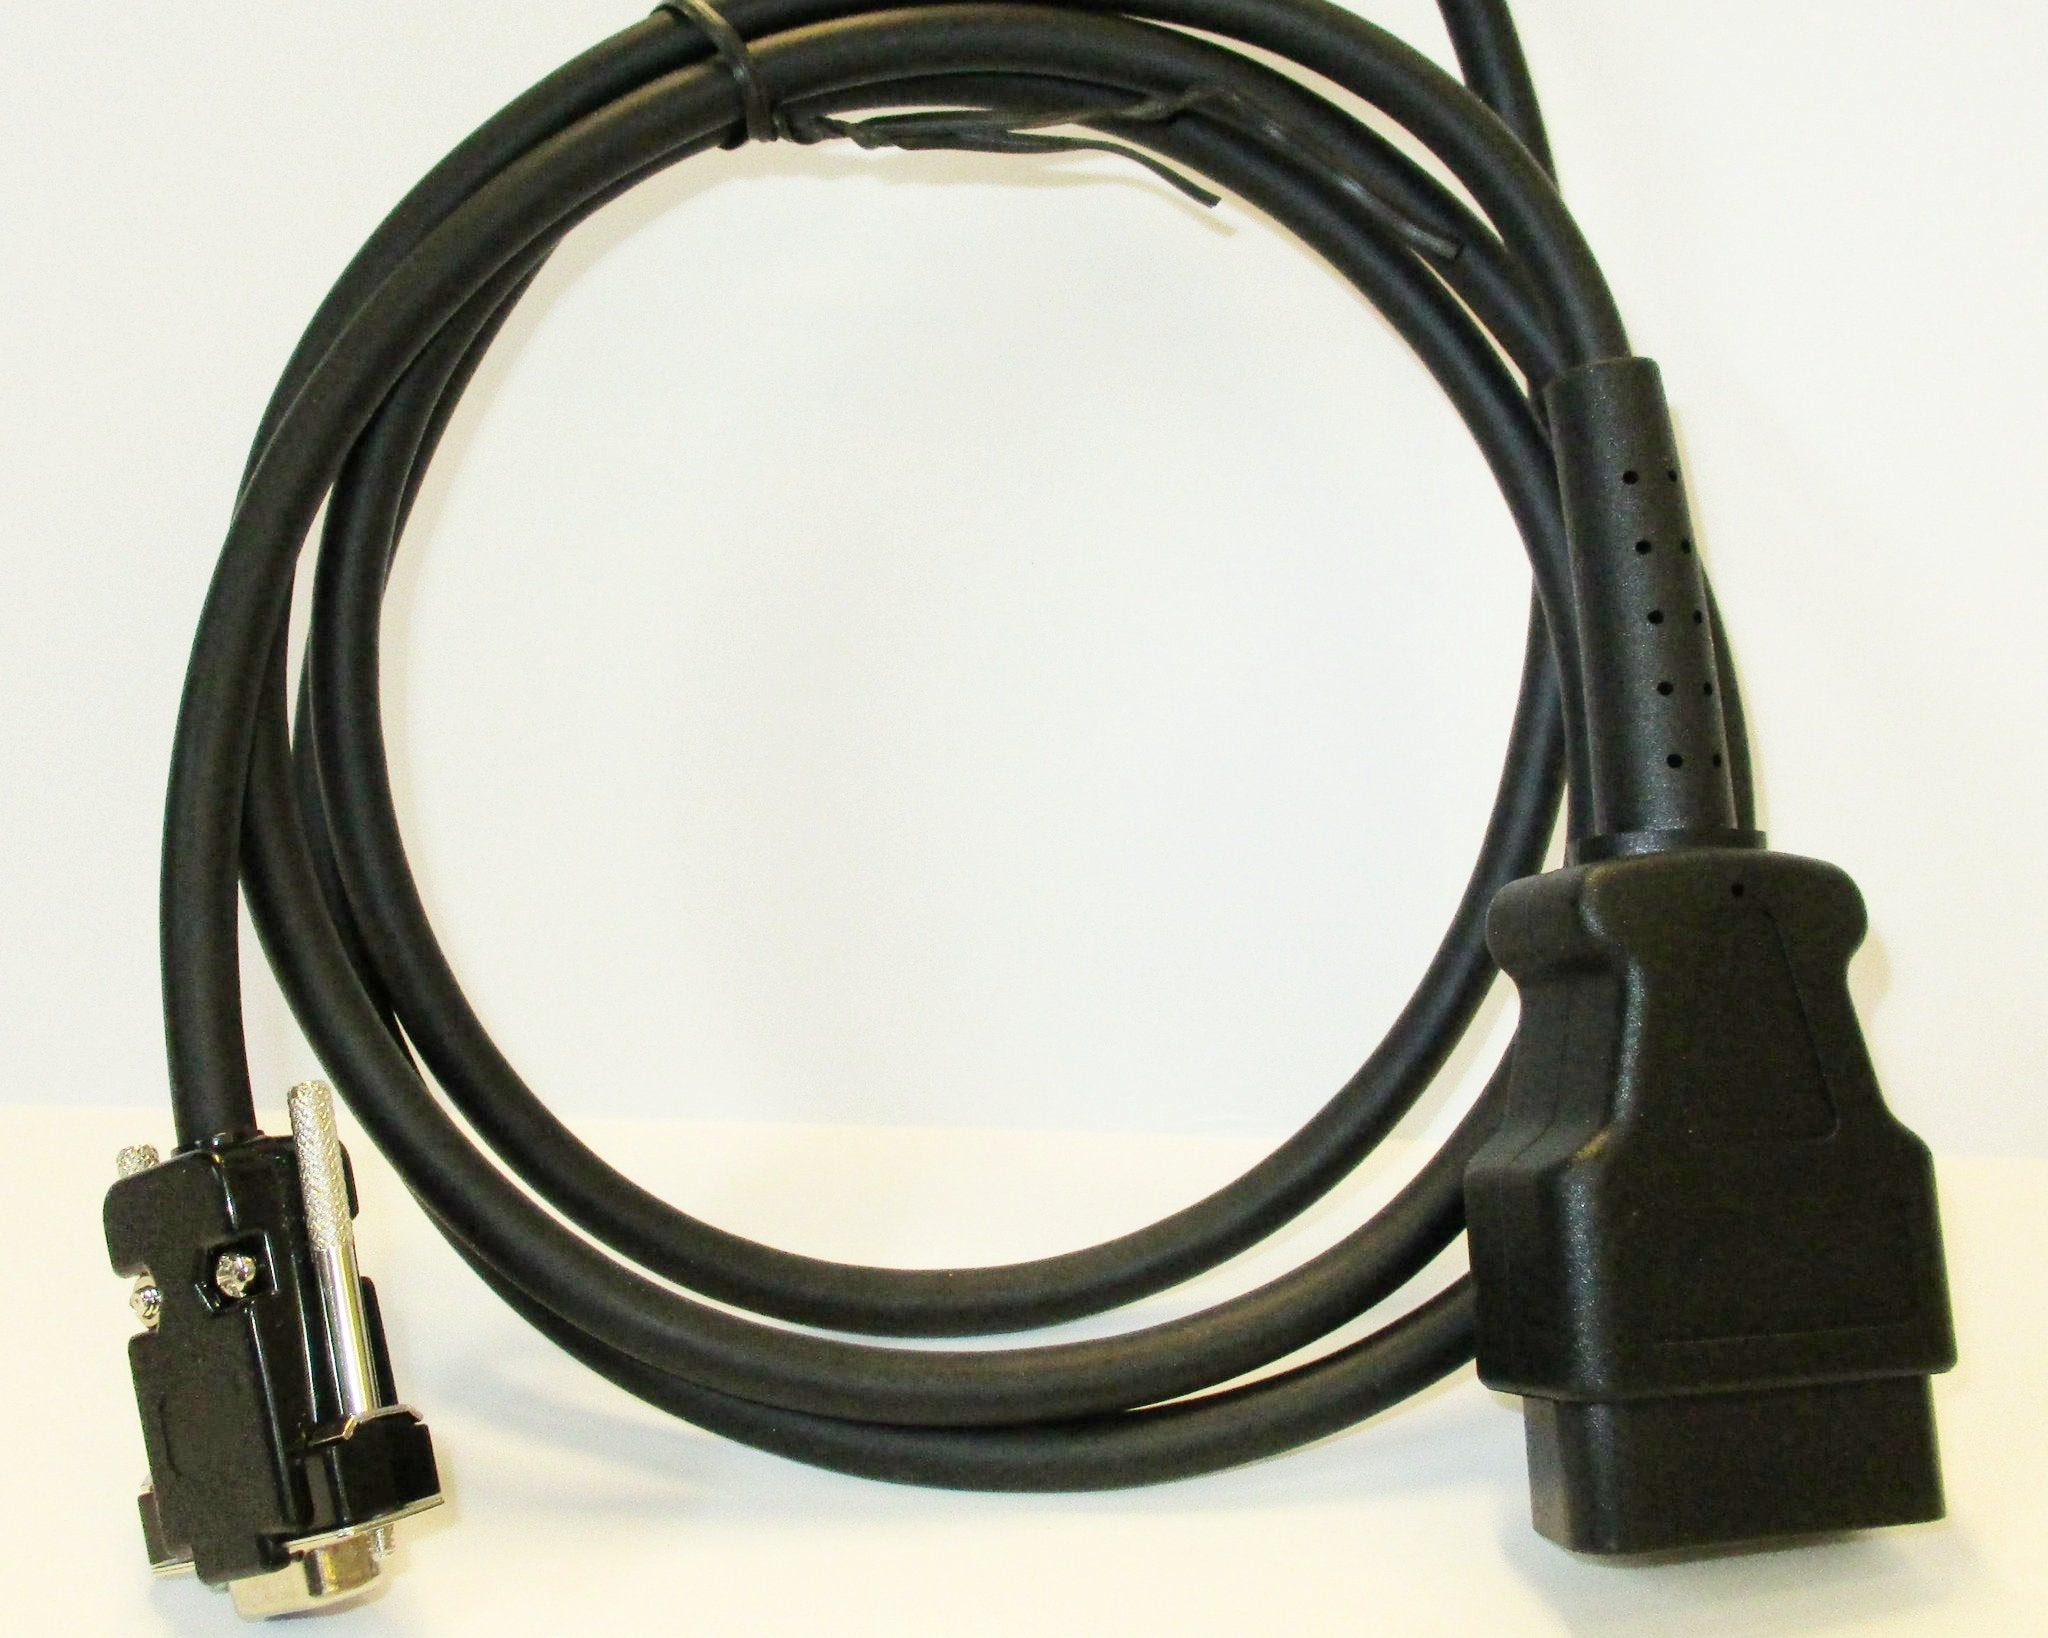 DAD OBDII CABLE, WORLDWIDE